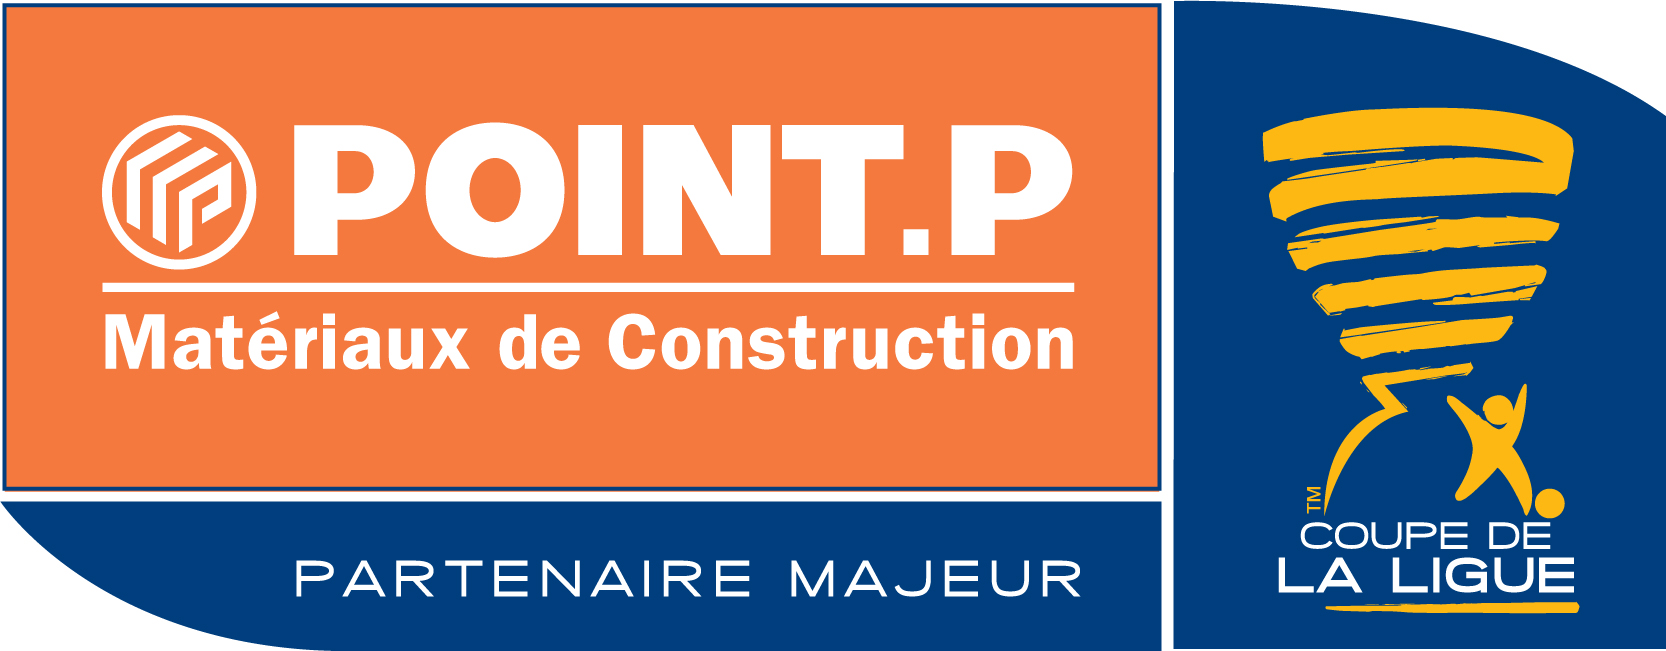 Point p reconduit son partenariat avec la coupe de la - Point p pessac ...